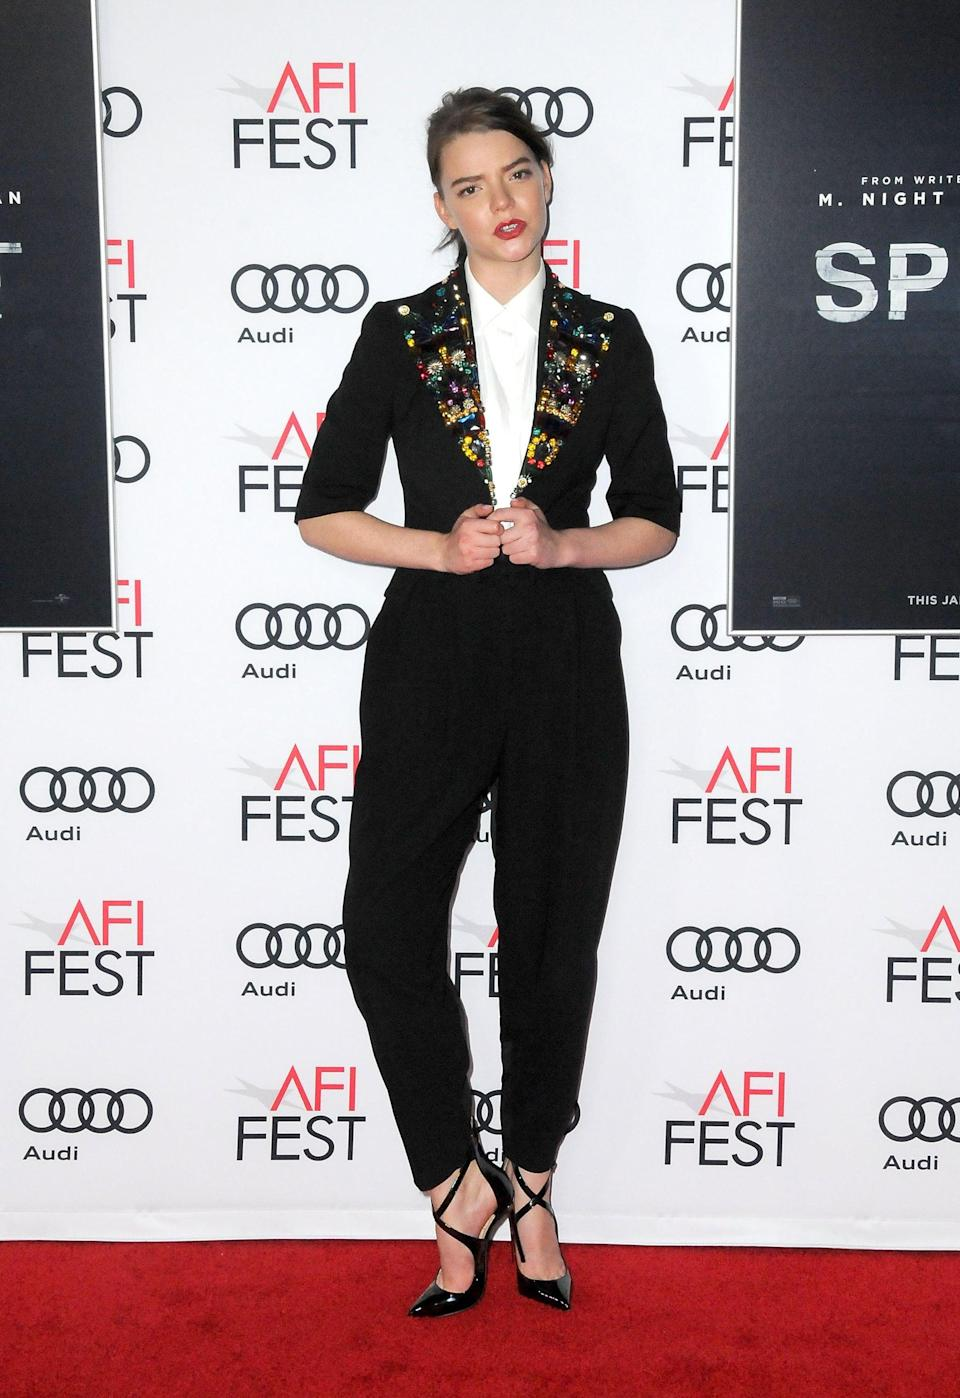 <p>Anya suited up in an embellished jacket, black trousers, and crossover strap shoes.</p>